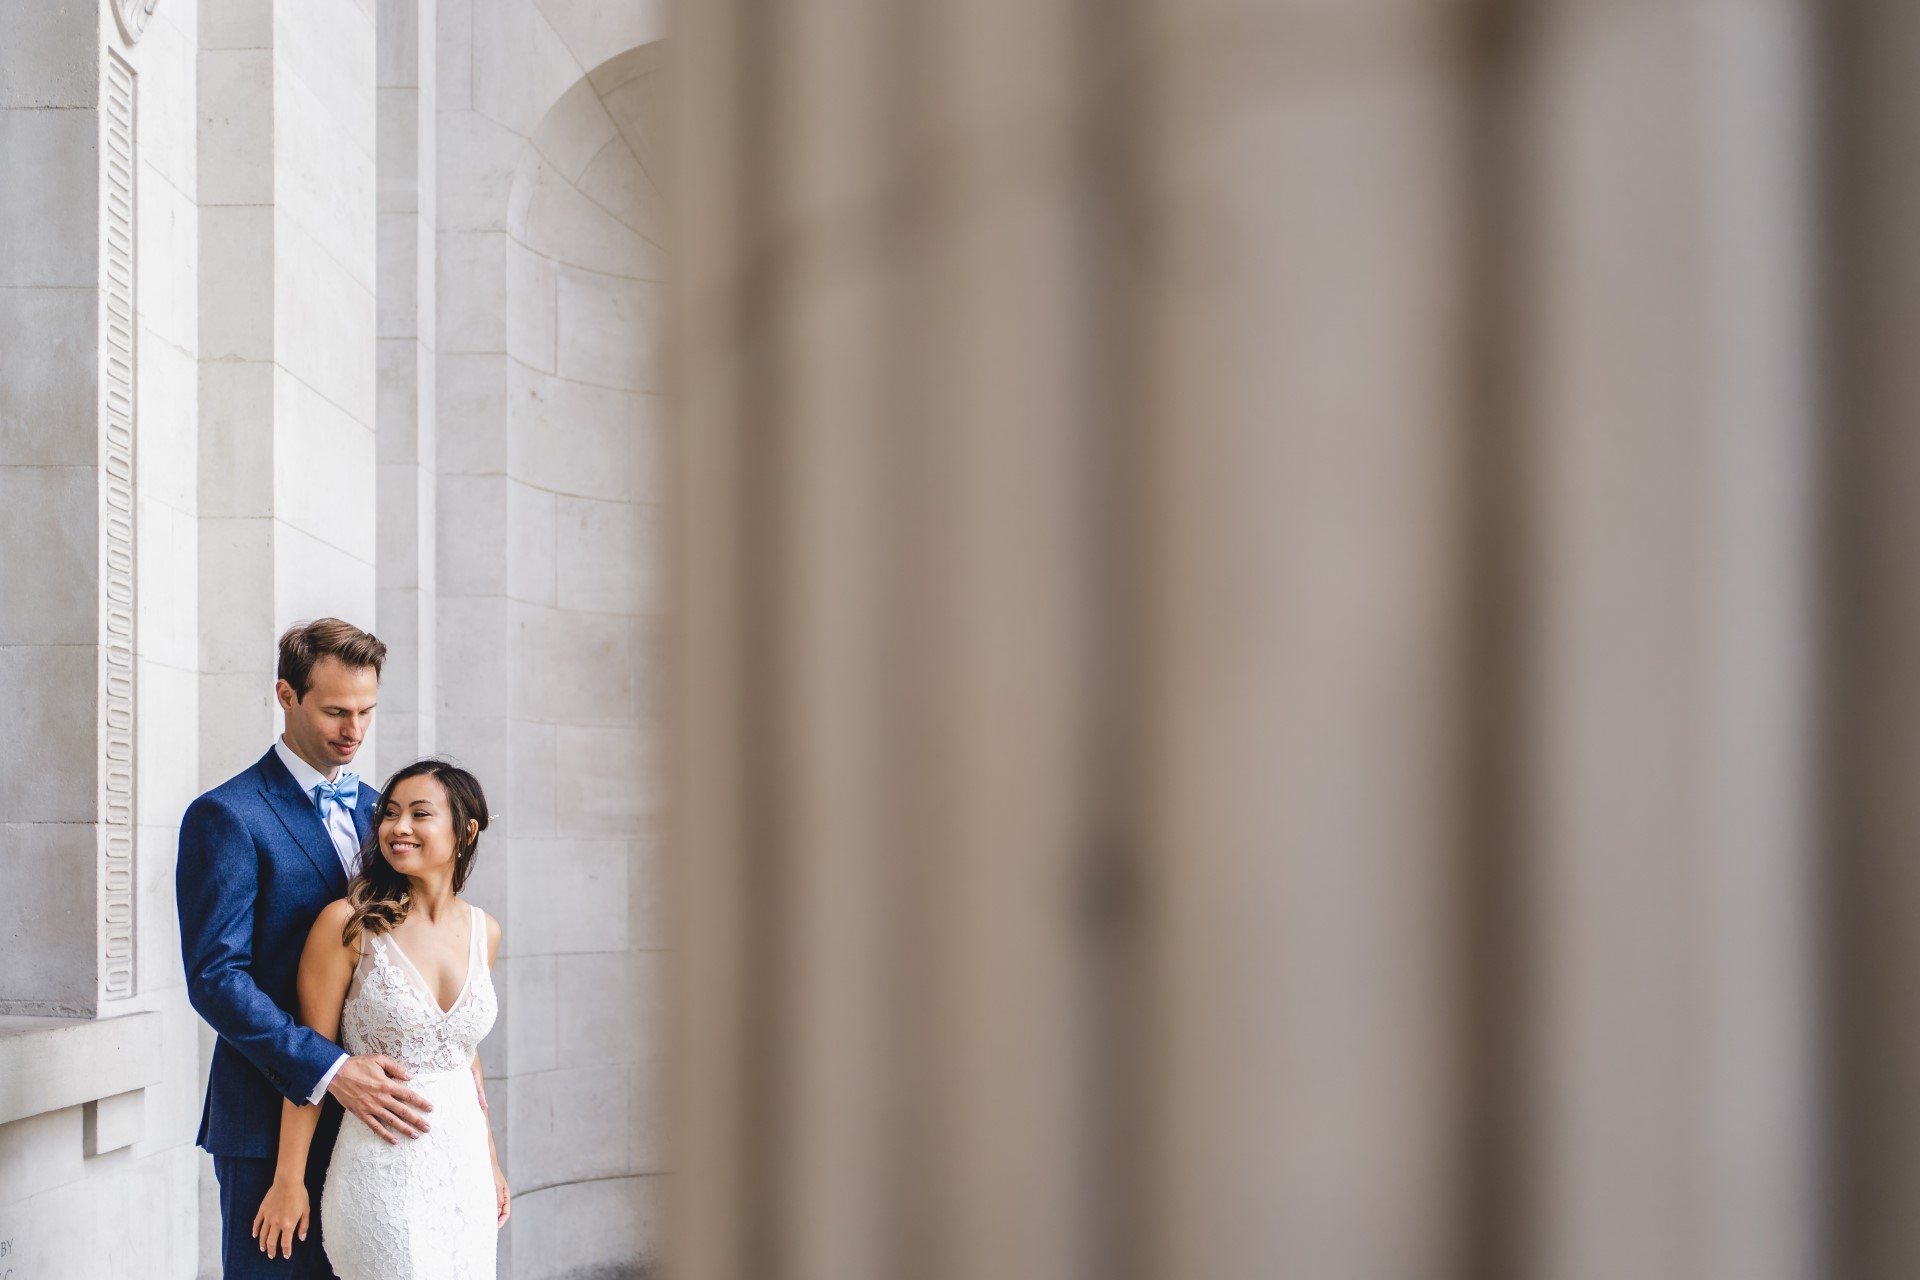 Westminster Council House Wedding Photographer | The bride and groom share some time together for posed pictures